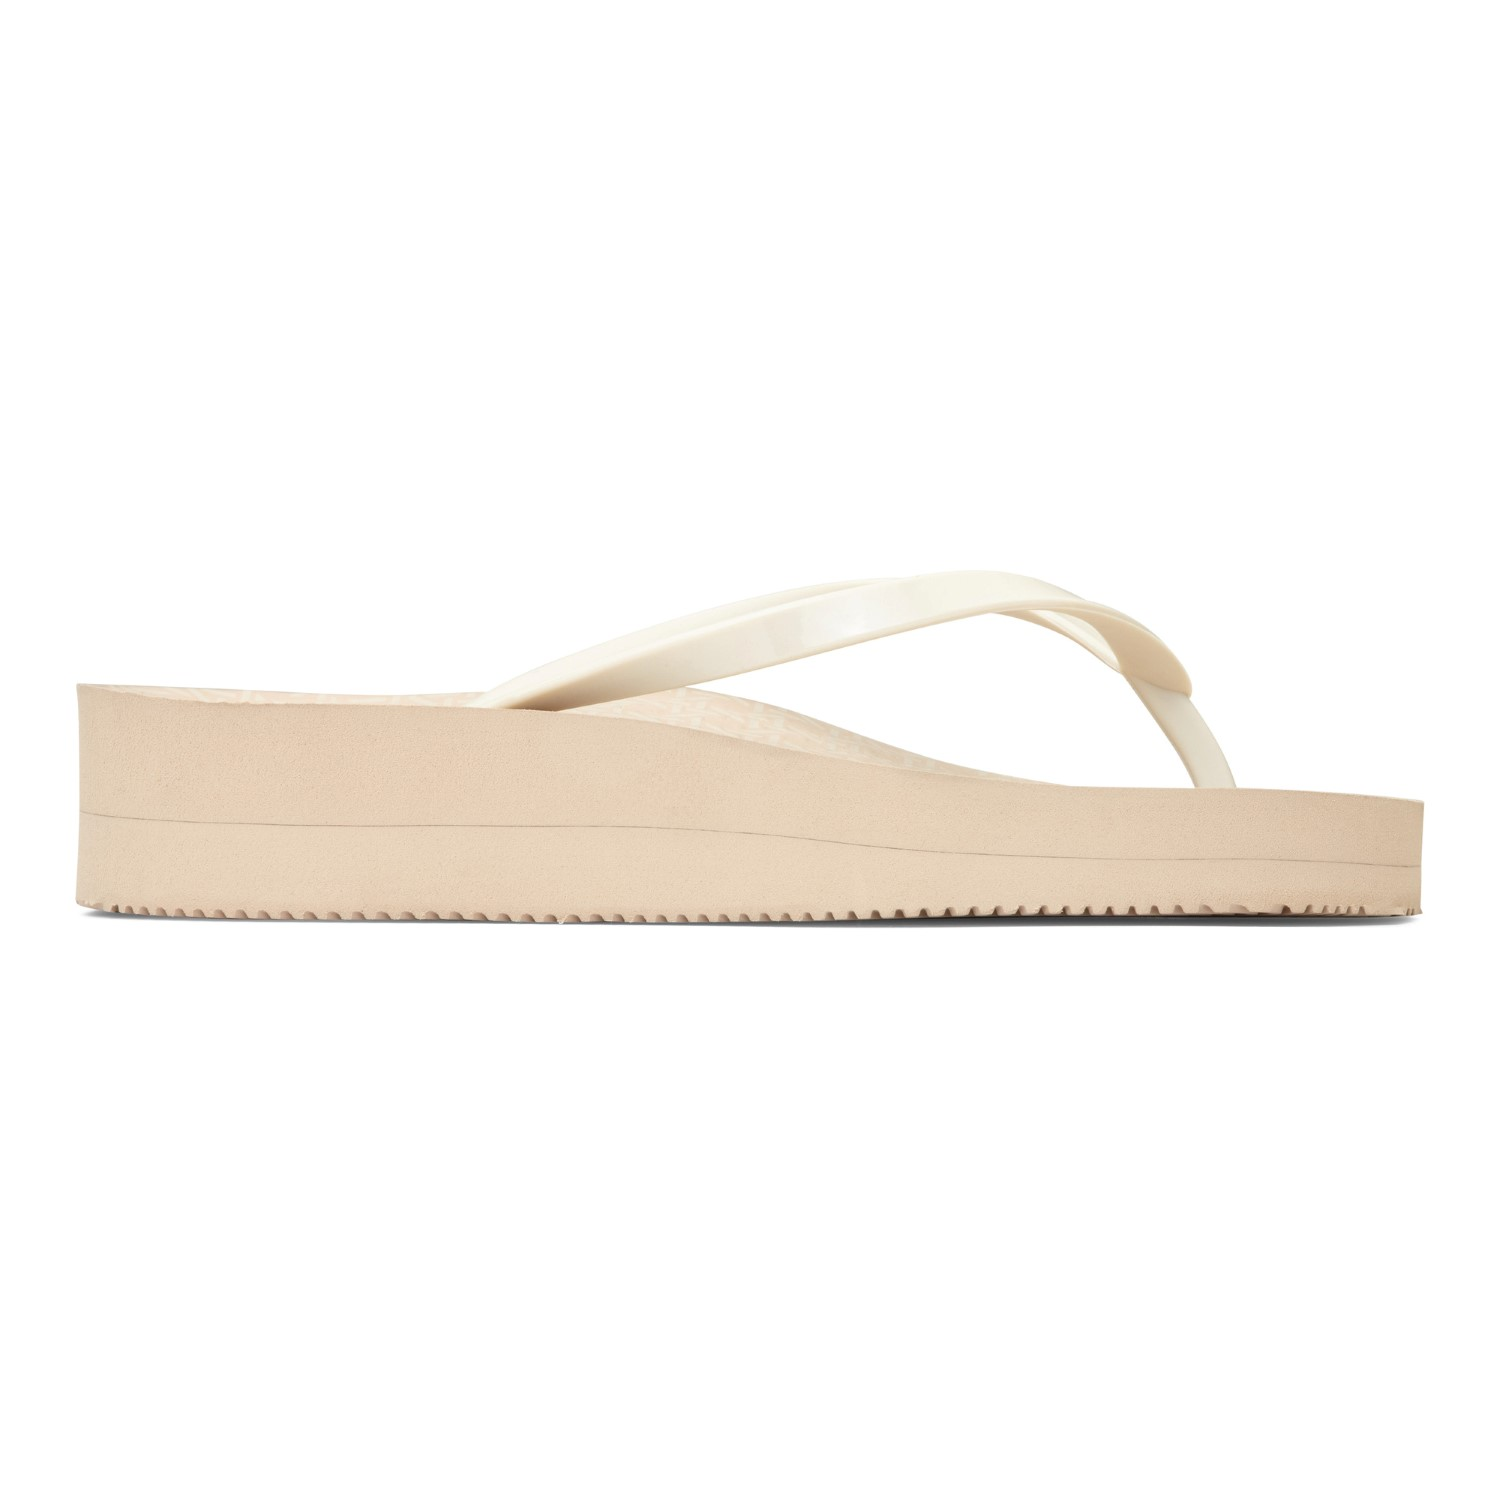 09f98ef00 Vionic Coogee Wedge Women s Toe Post Sandal - Cream Woven 4 right view